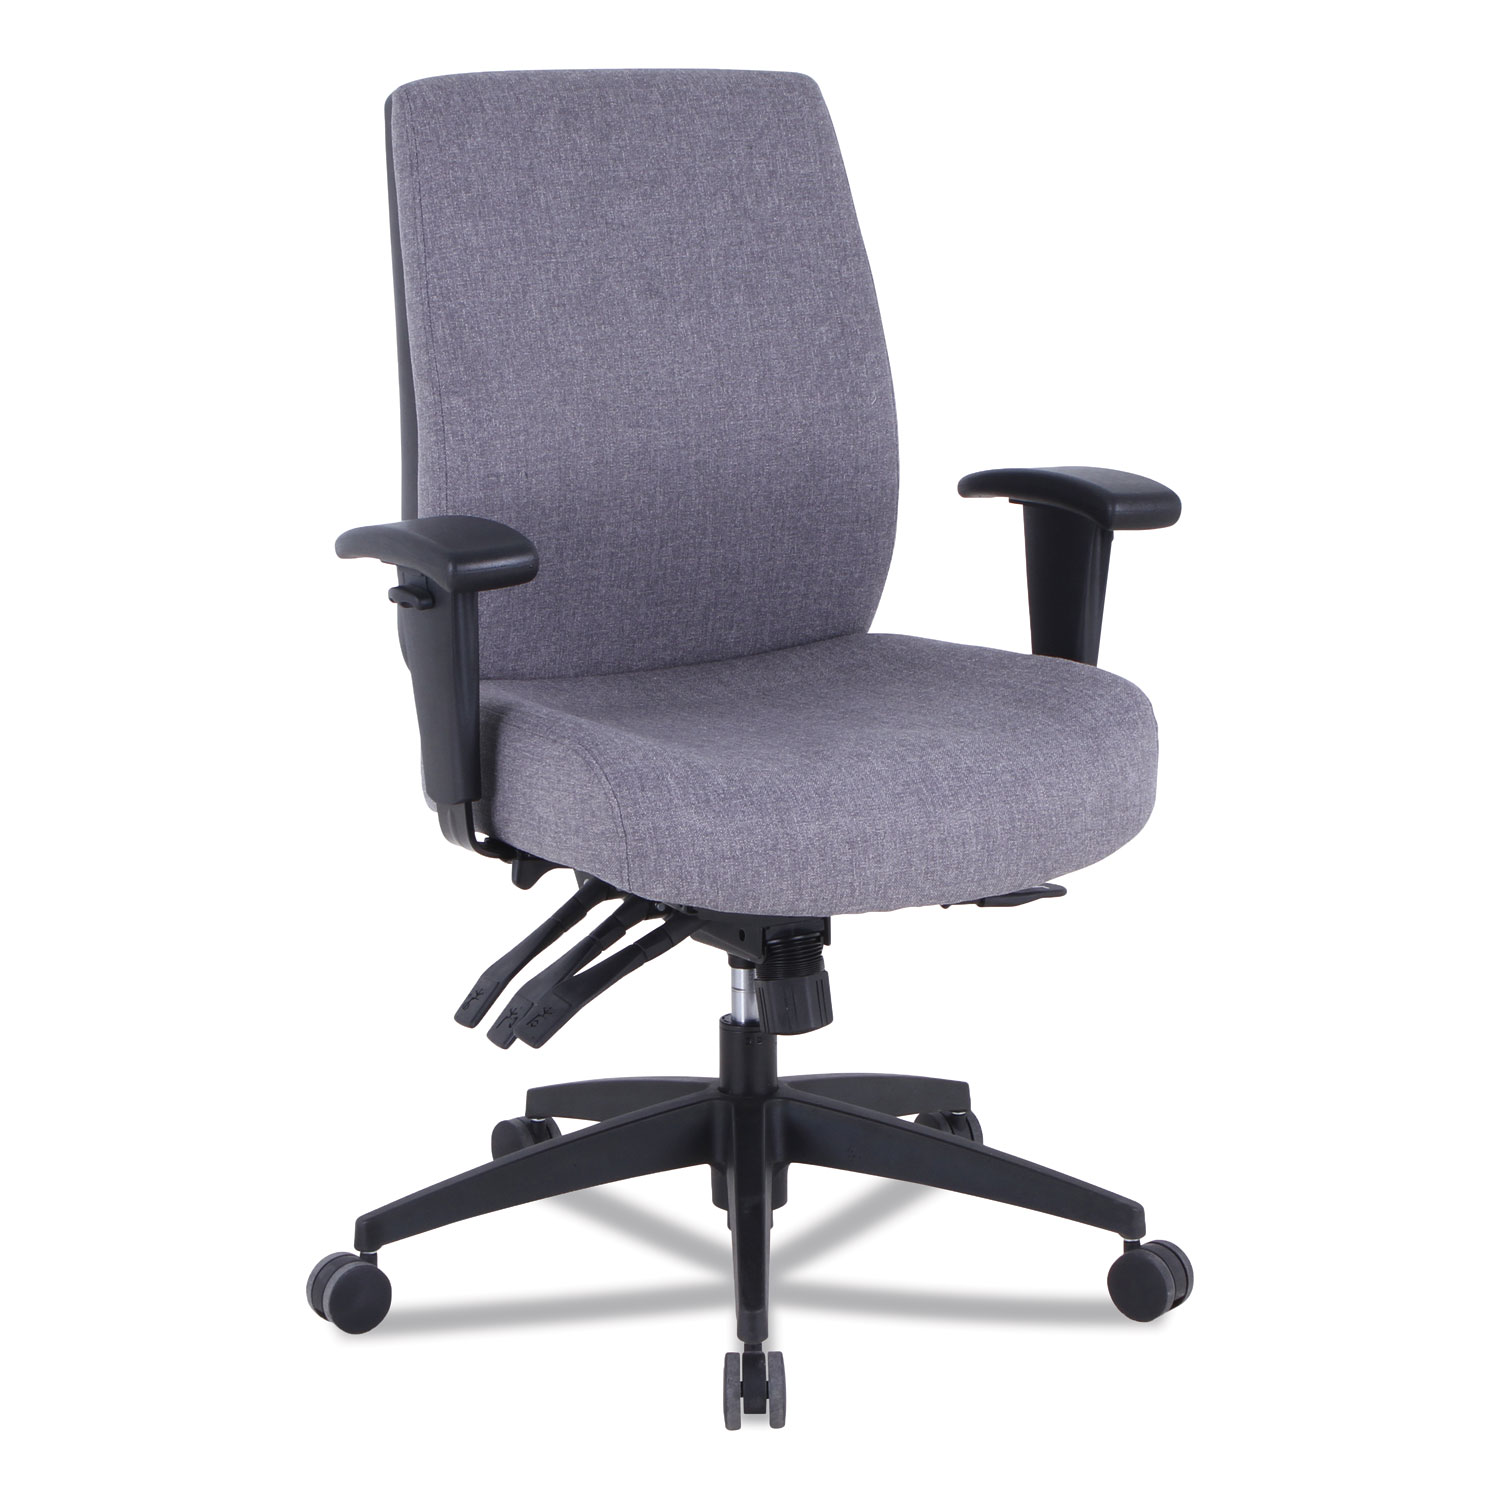 Alera Wrigley Series 24/7 High Performance Mid-Back Multifunction Task Chair, Up to 275 lbs., Gray Seat/Back, Black Base